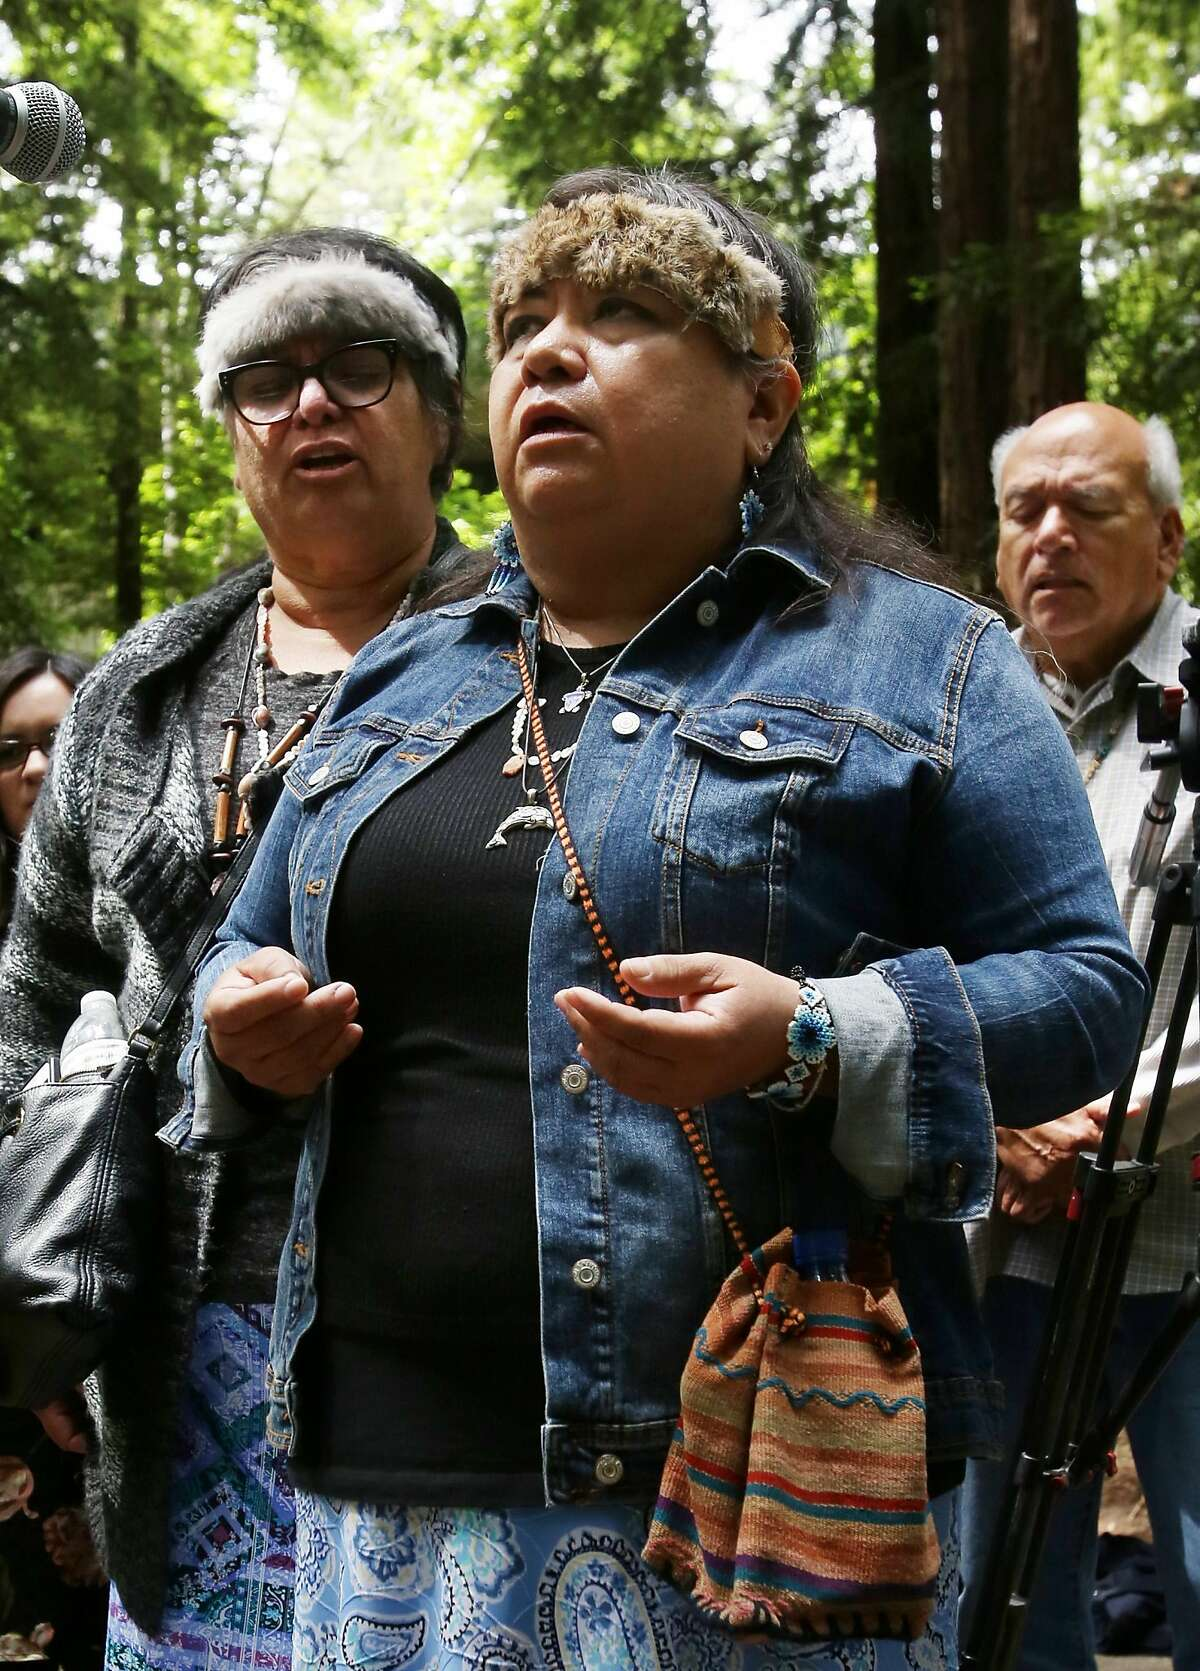 Representatives of the Amah Mutsun Tribal Band sing during the removal of the El Camino Real bell marker on Friday, 6/21, 2019 at UC Santa Cruz in Santa Cruz, California. From left are: Lorraine Luna, Catherine Luna and Valentin Lopez. The bell marker, which memorializes the California Missions and an imagined route of travel that once connected them, is viewed by the Amah Mutsun and many other California indigenous people as a racist symbol that glorifies the domination and dehumanization of their ancestors. It is being removed at the request of the Amah Mutsun, with support from UCSC faculty members, students, and administrators.